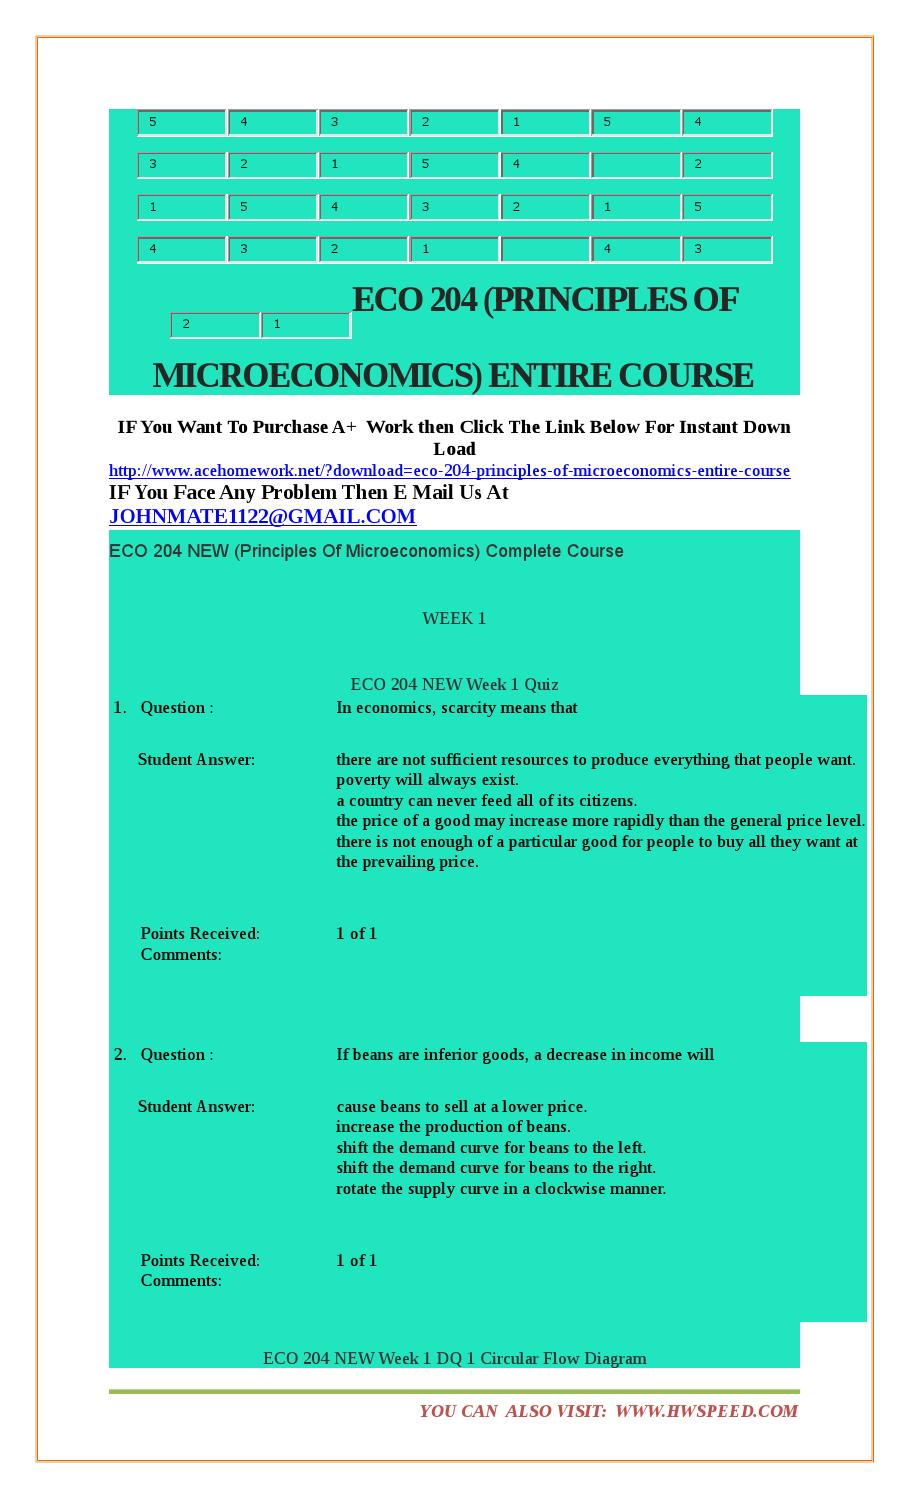 Eco 204 (principles of microeconomics) entire course by phosa.me - issuu